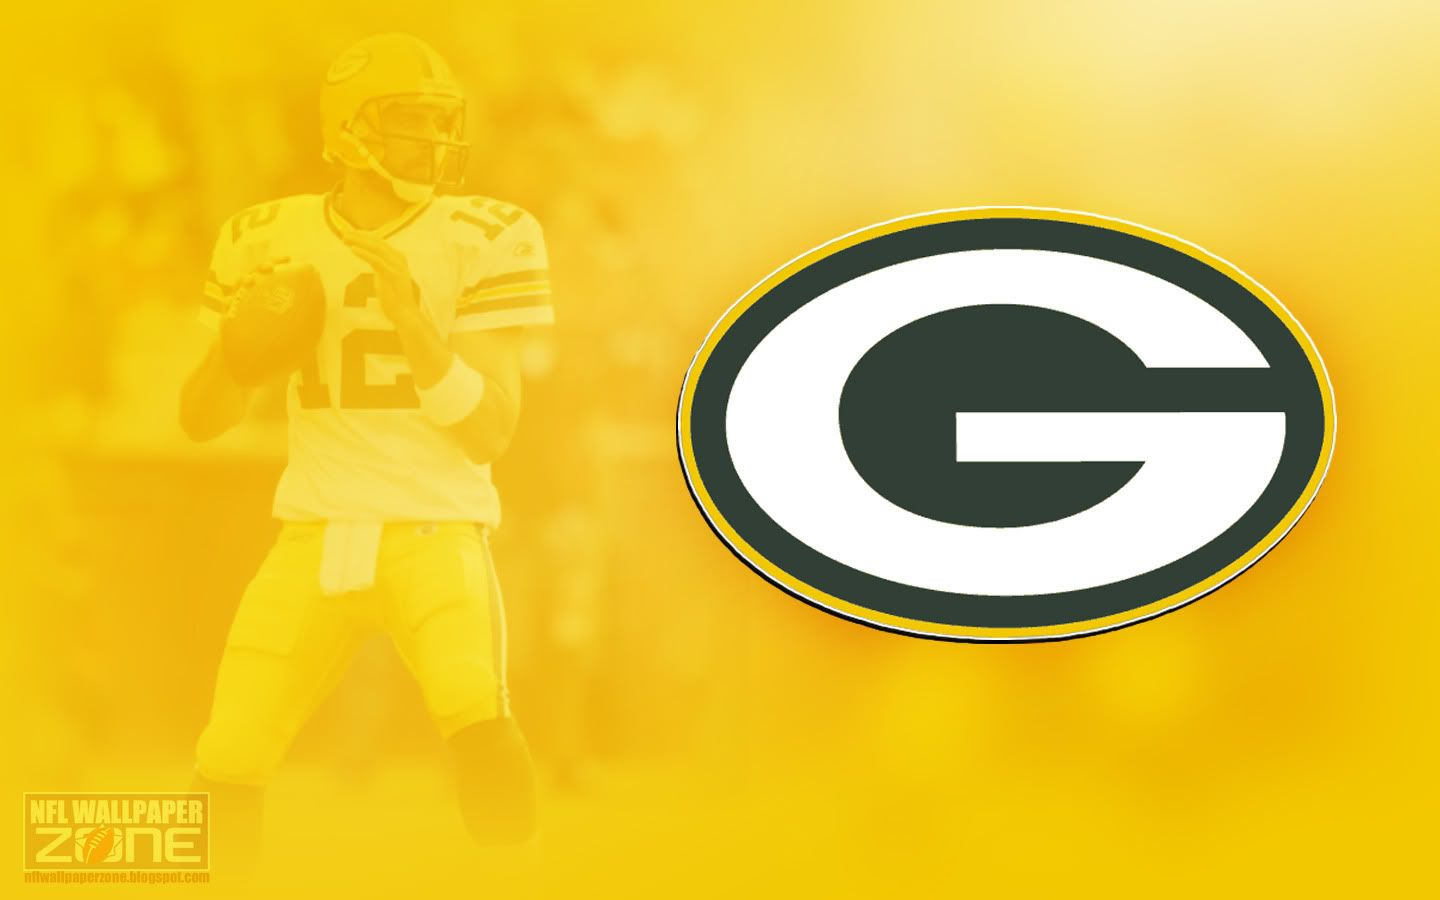 Green Bay Packers Wallpaper Image Graphic Picture Photo Free Green Bay Packers Wallpaper Green Bay Packers Logo Green Bay Packers